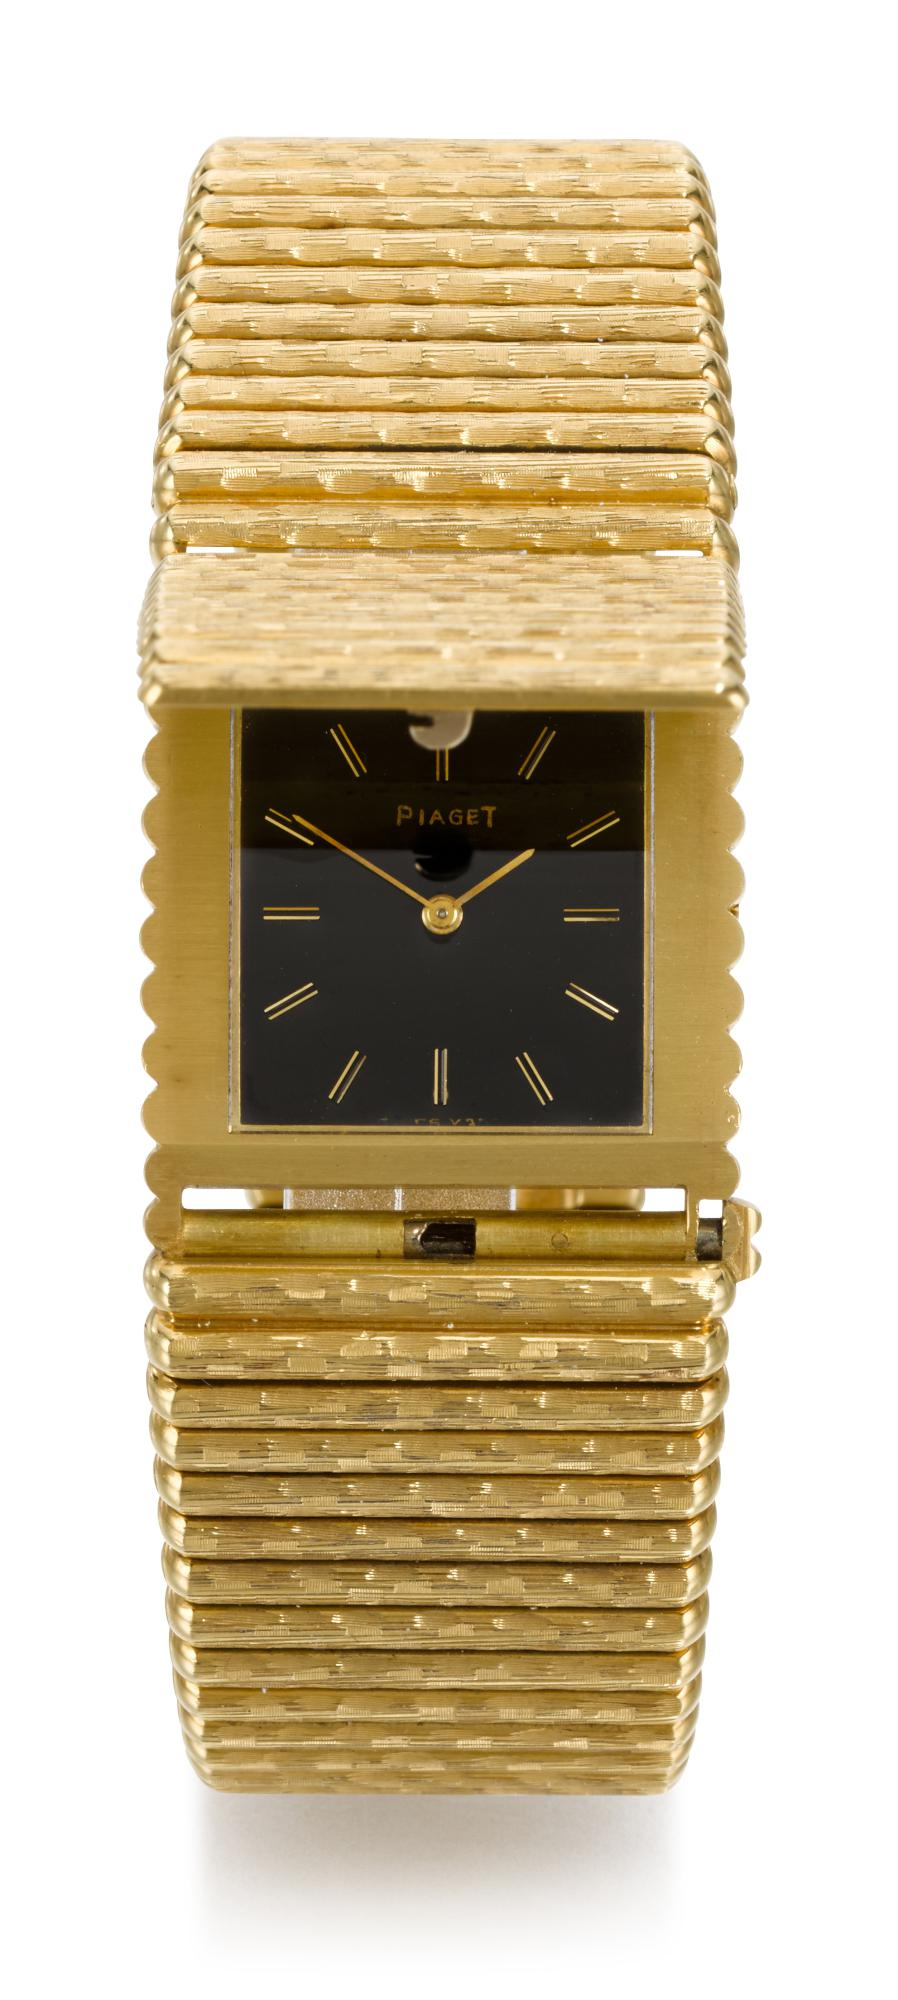 PIAGET | REFERENCE 9130 C 20 YELLOW GOLD BRACELET WATCH WITH CONCEALED DIAL, MADE IN 1973